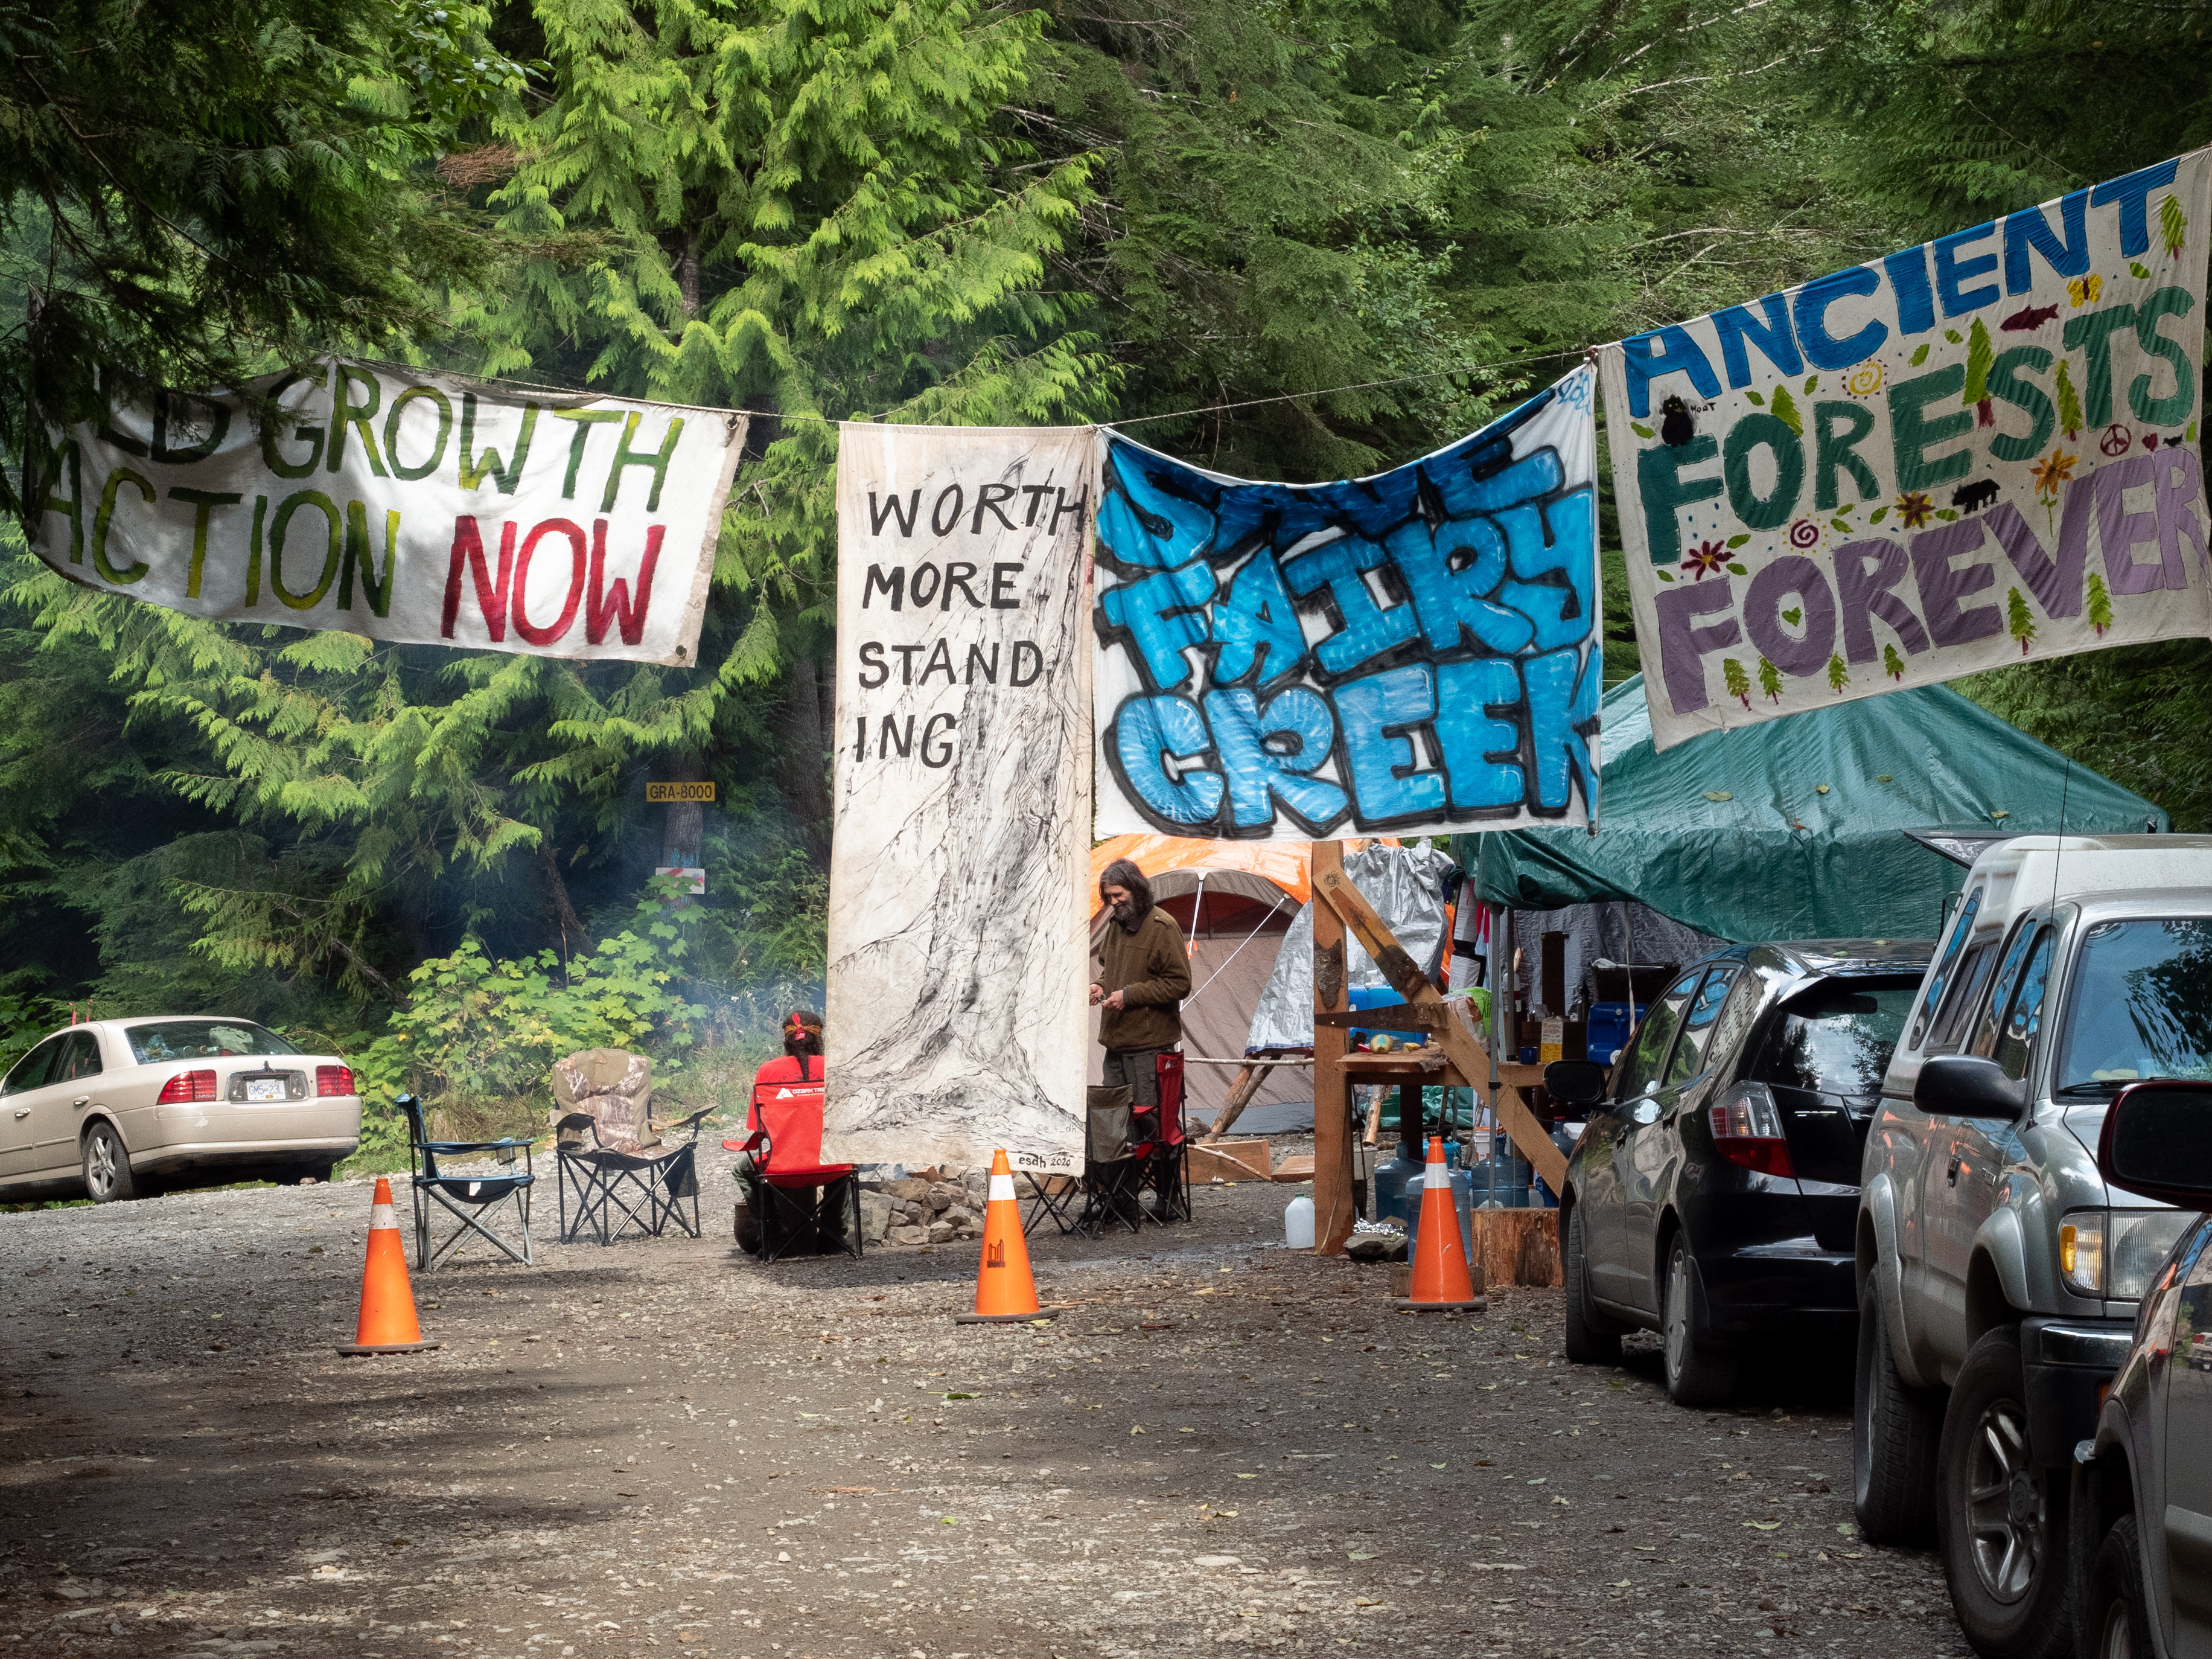 """Protestors block the road into Fairy Creek on Vancouver Island. Cars, seats, and tents line the side of the roads. Signs hanging from rope read, """"Old growth action now,"""" """"worth more standing,"""" """"save fairy creek,"""" and """"ancient forests forever."""""""